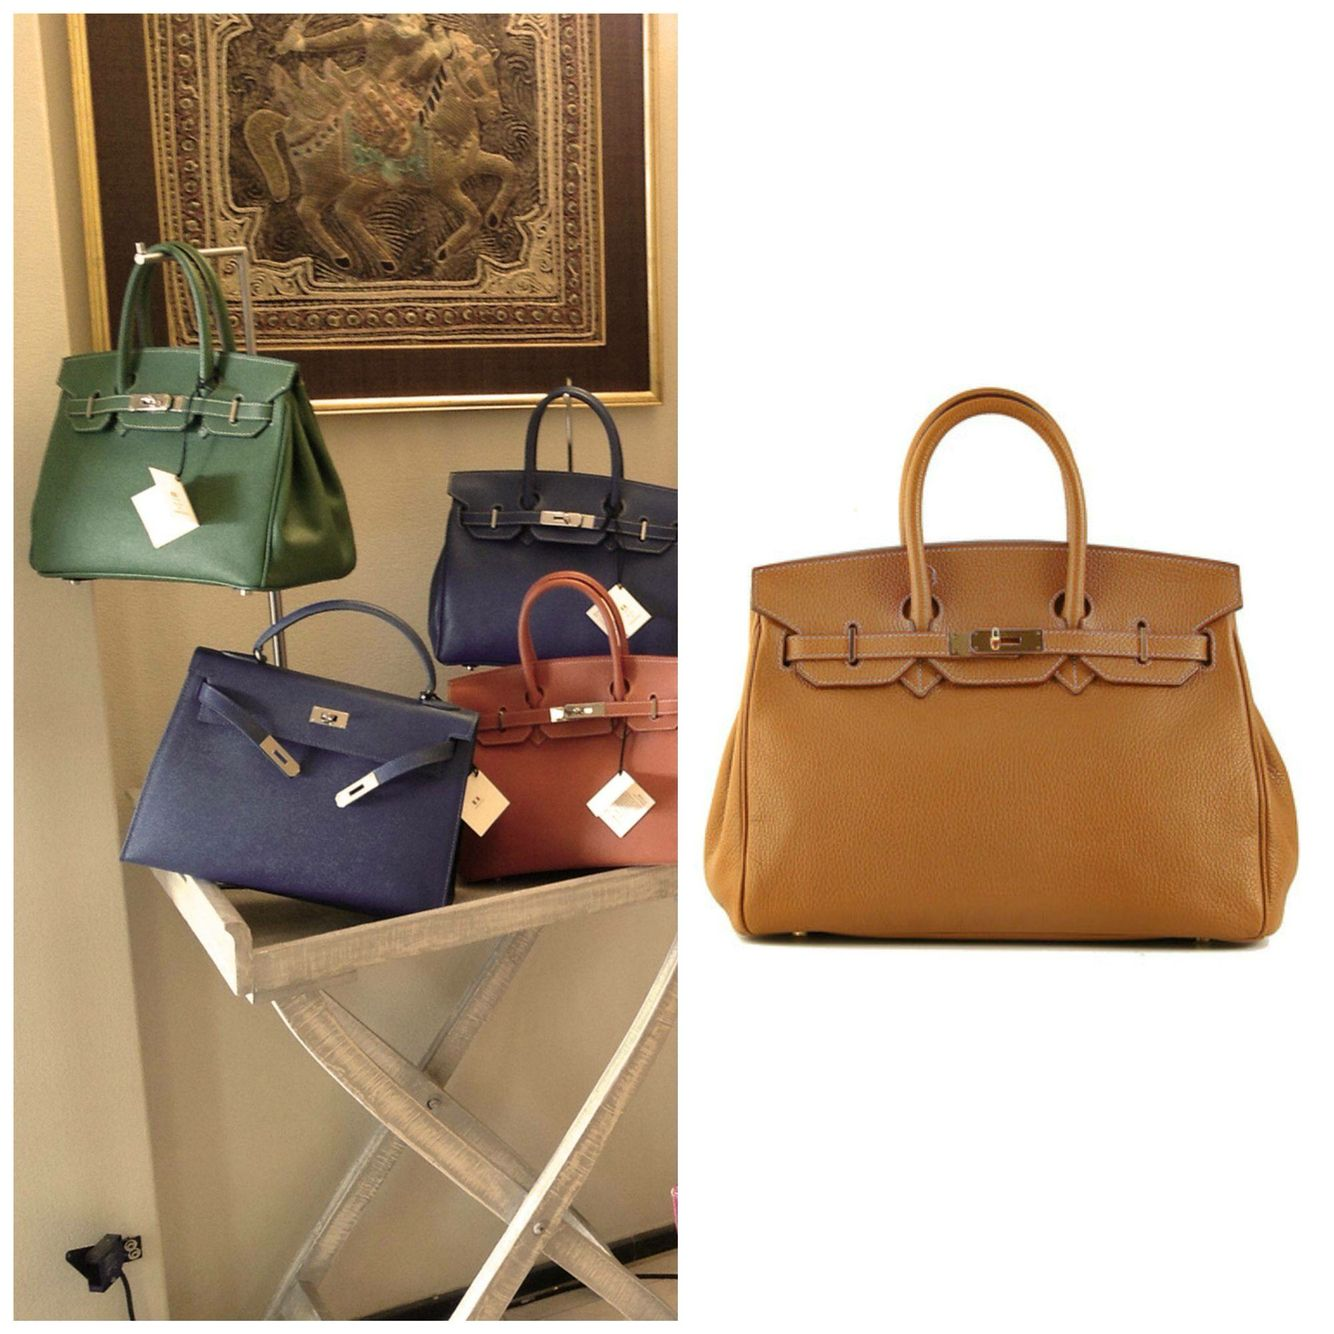 Buti Handbags On Stylenovo Stefania Team Madeinitaly